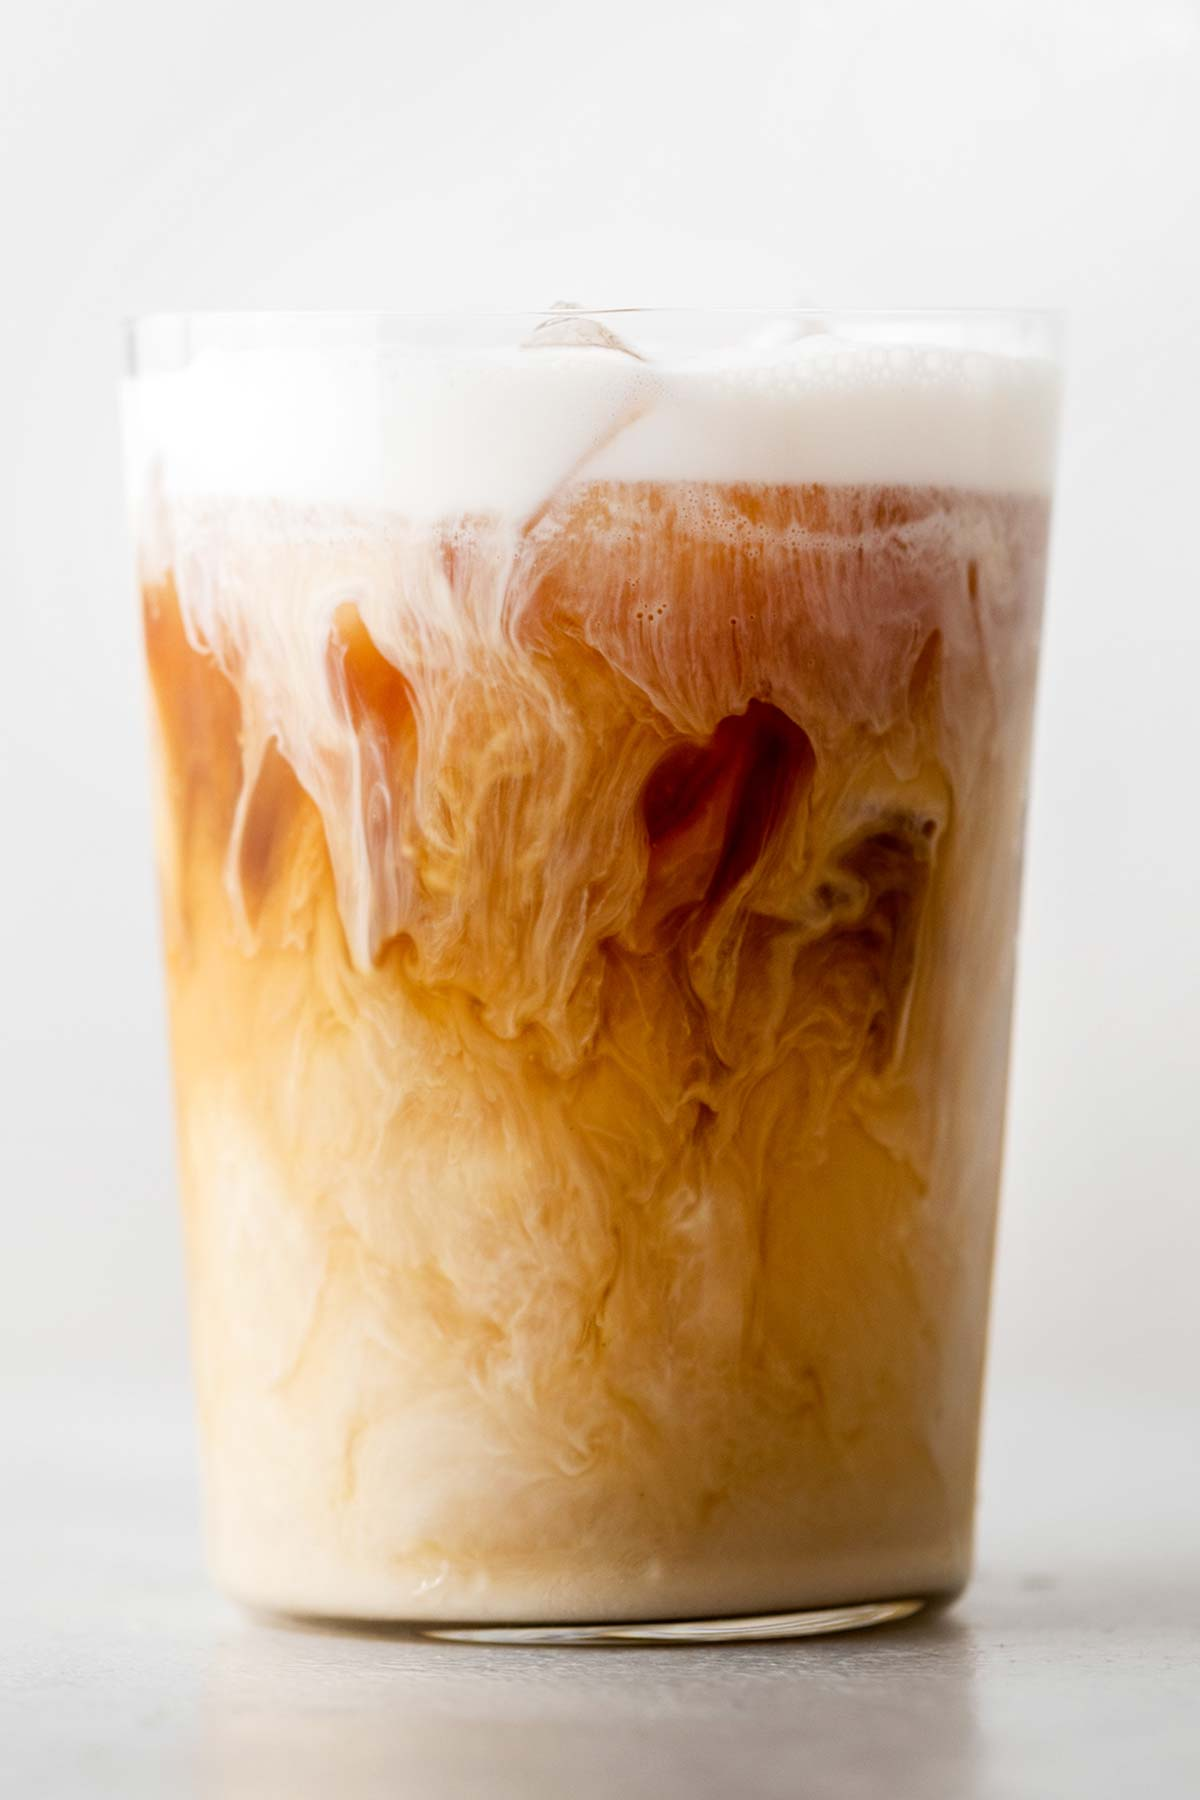 Jameson Cold Brew Irish Whiskey with cold foam in a glass cup.